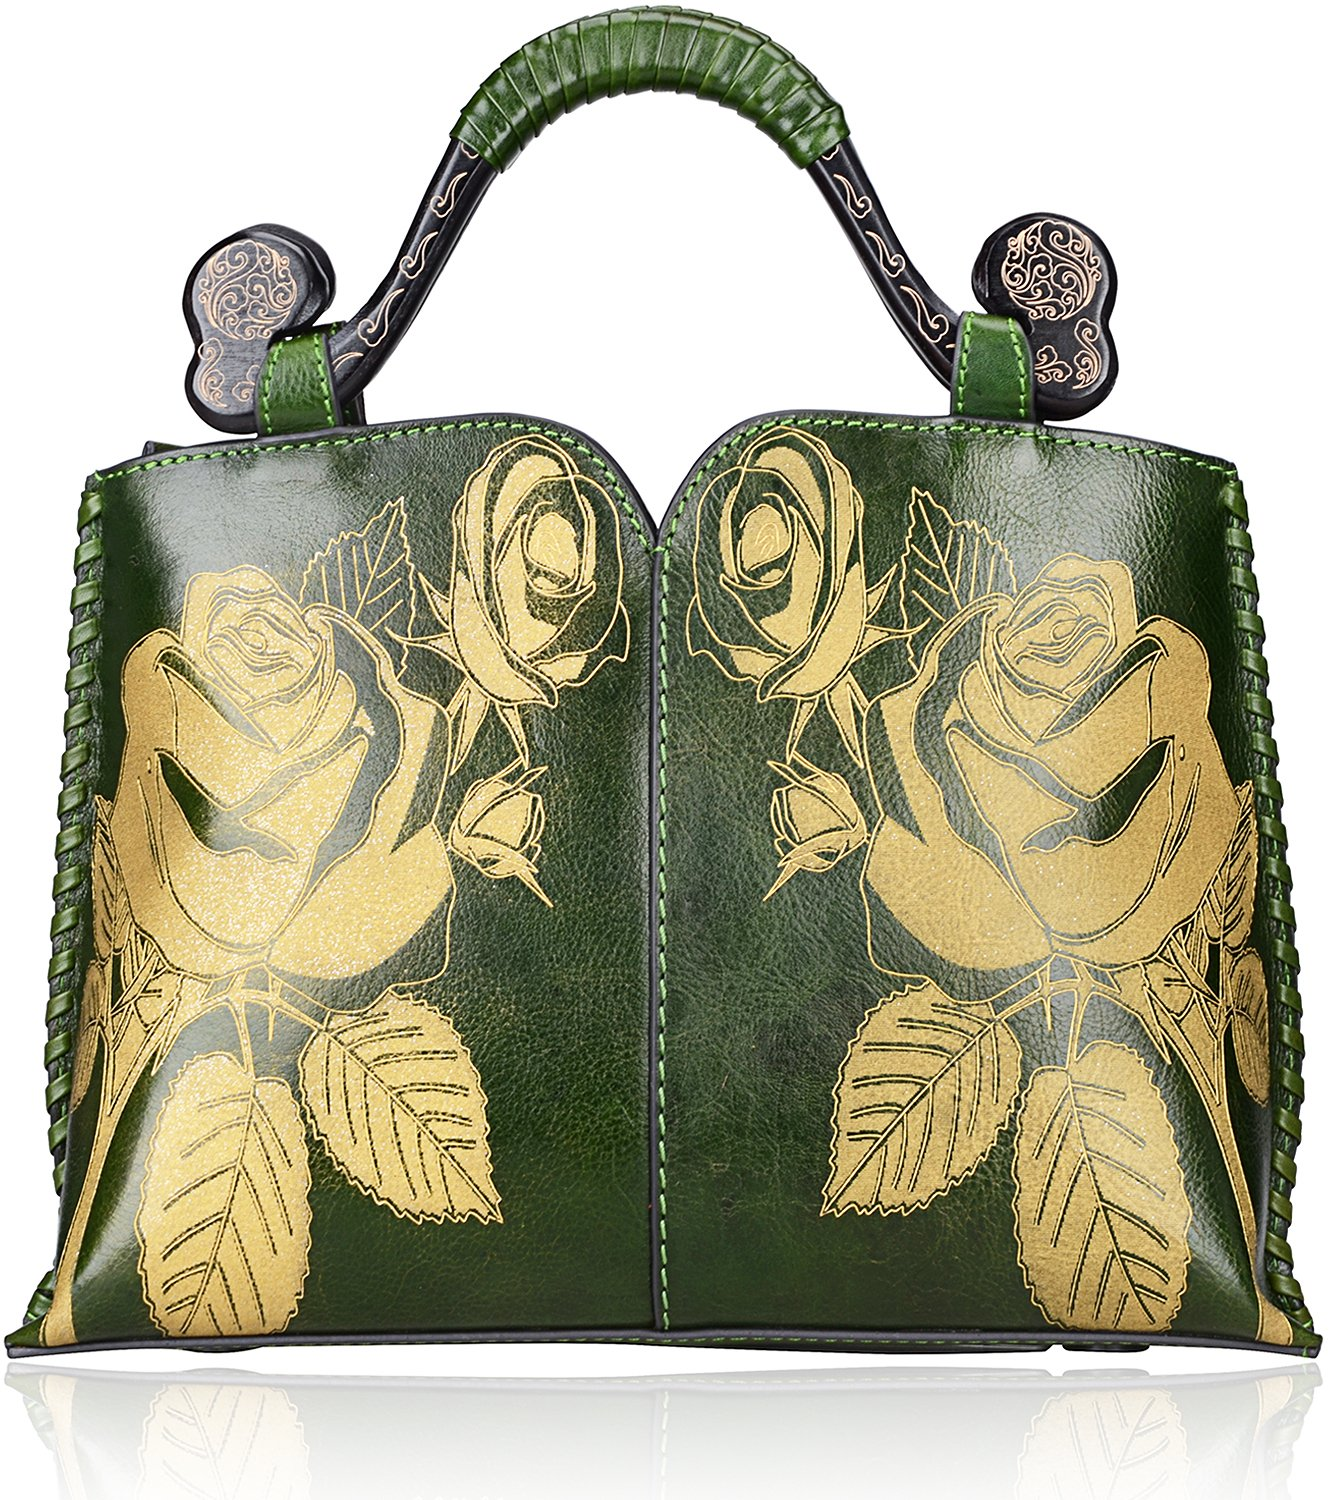 Pijushi Designer Floral Handbag Women's Genuine Leather Tote Flower Purses 6026 (Small Size, Green Rose)